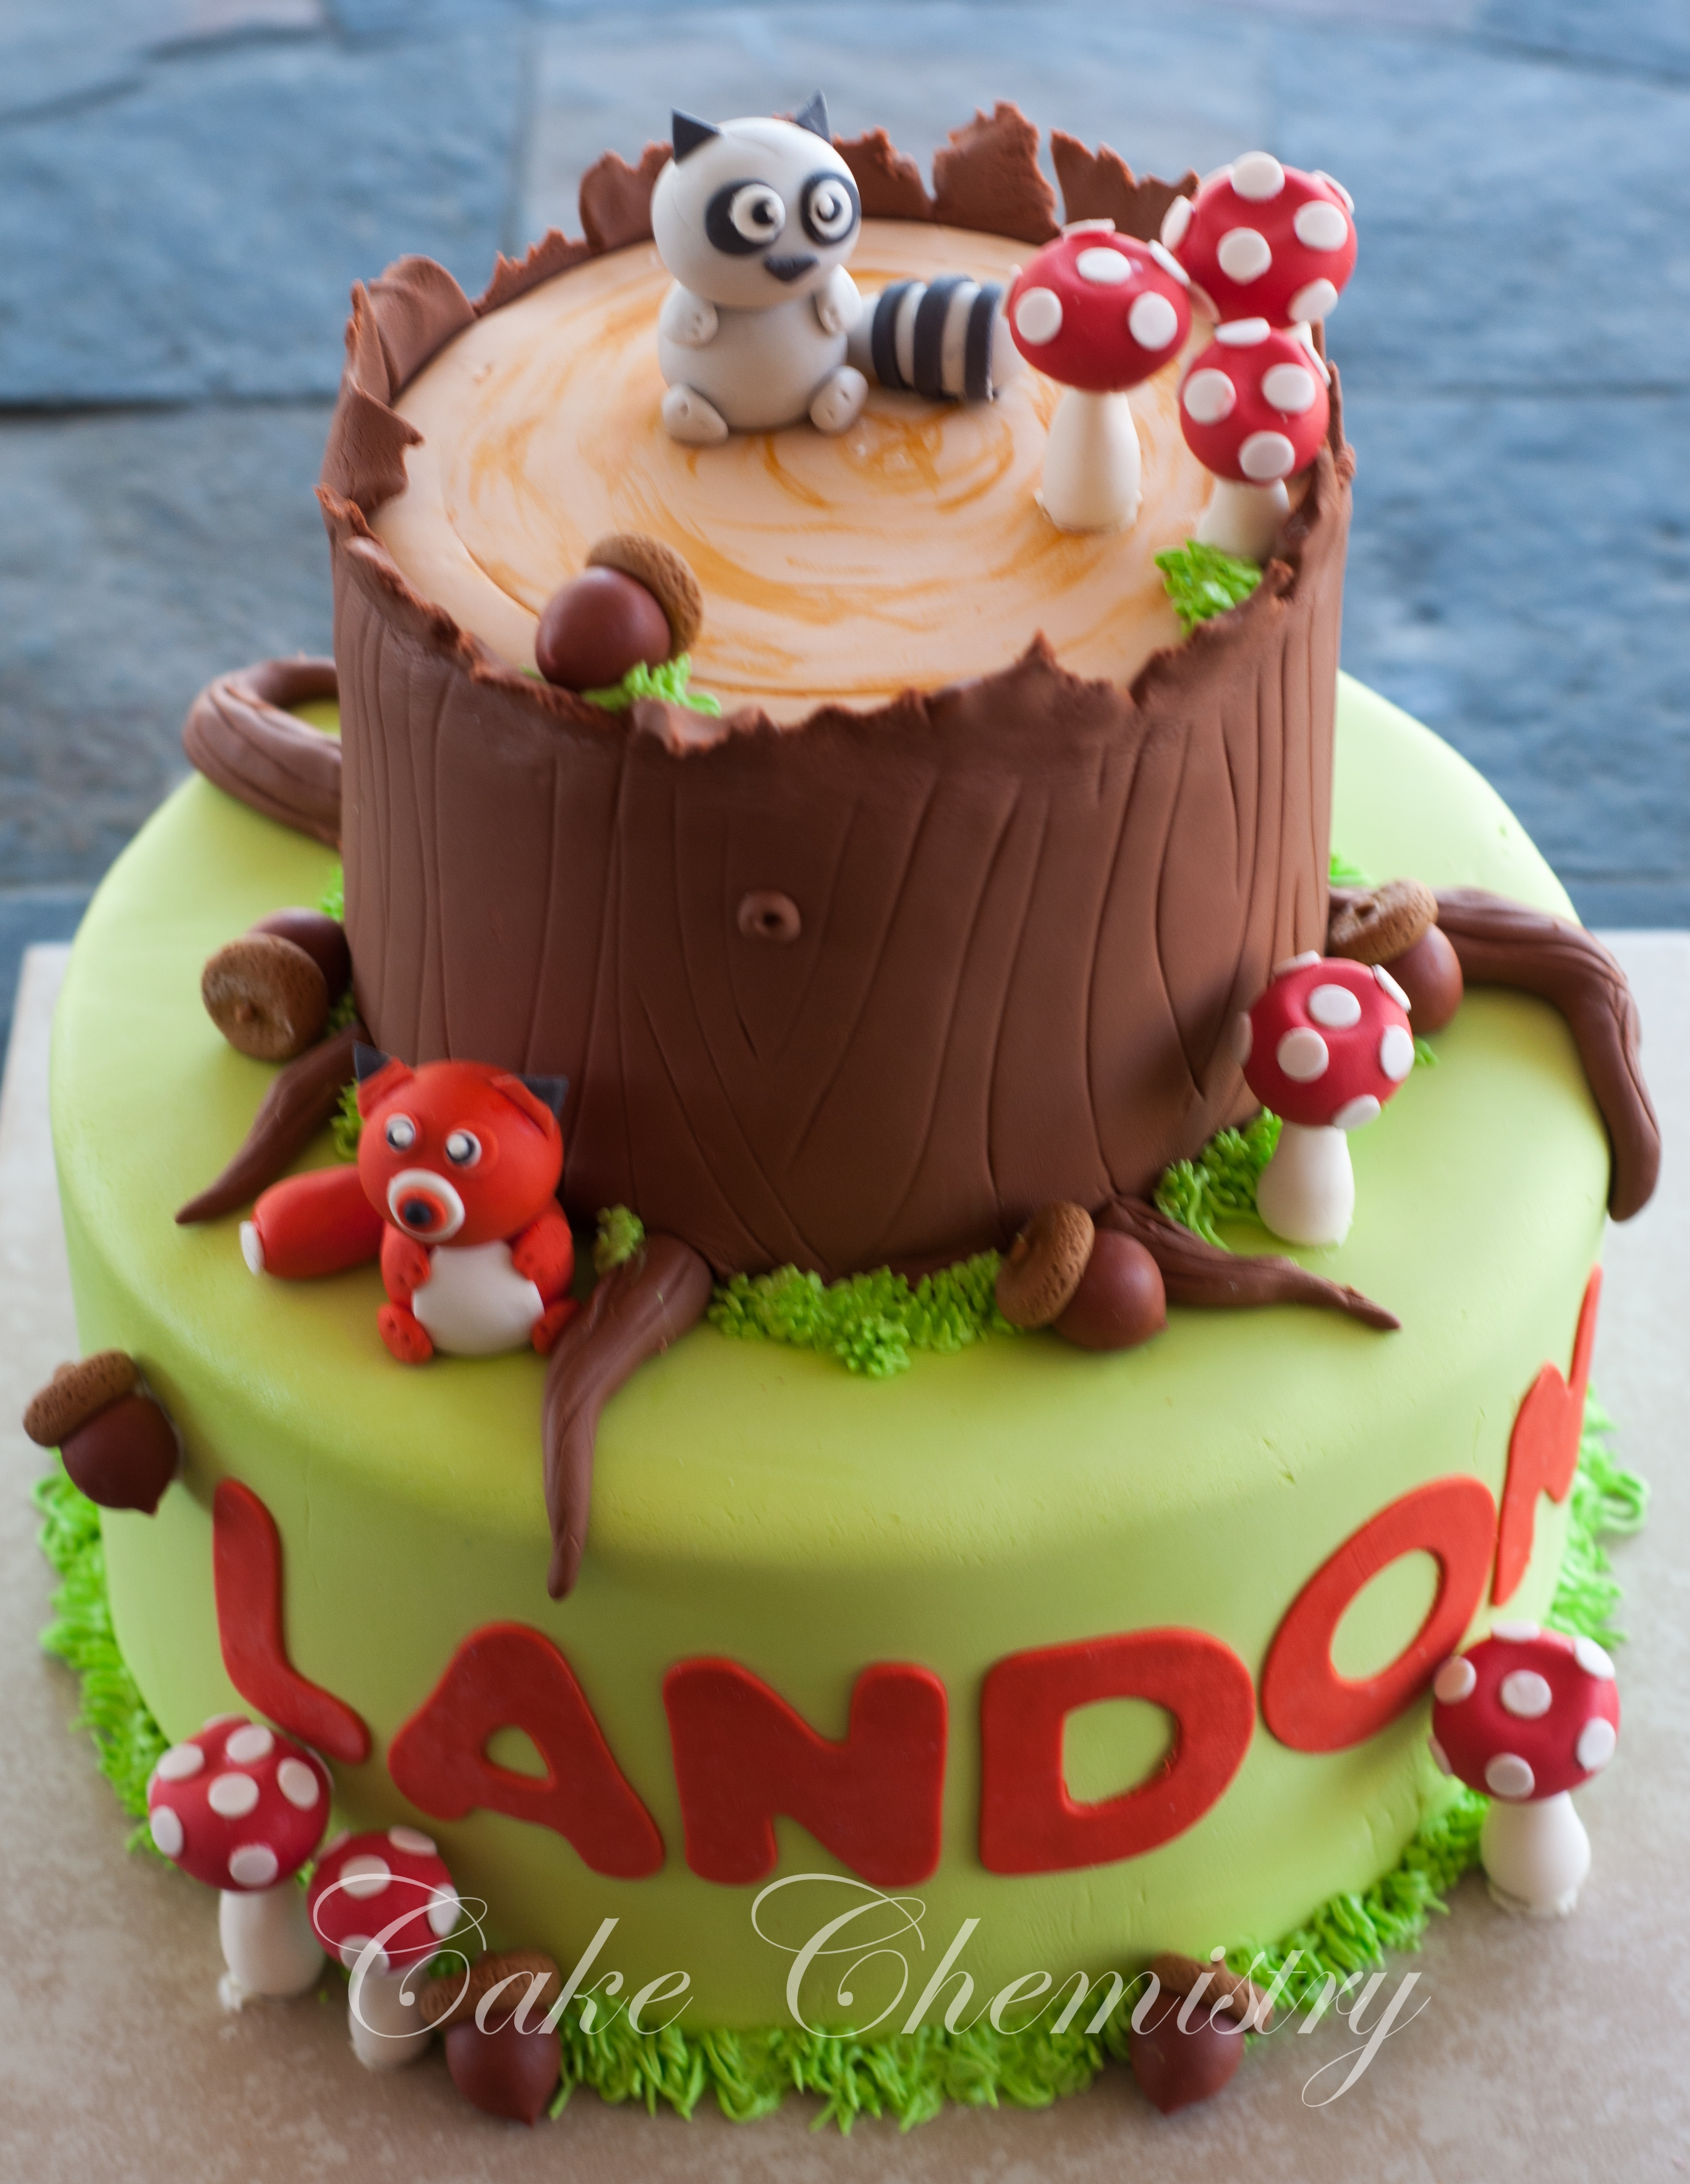 Woodland Critter Birthday Cake 2 tier cake with gumpaste and fondant decorations.